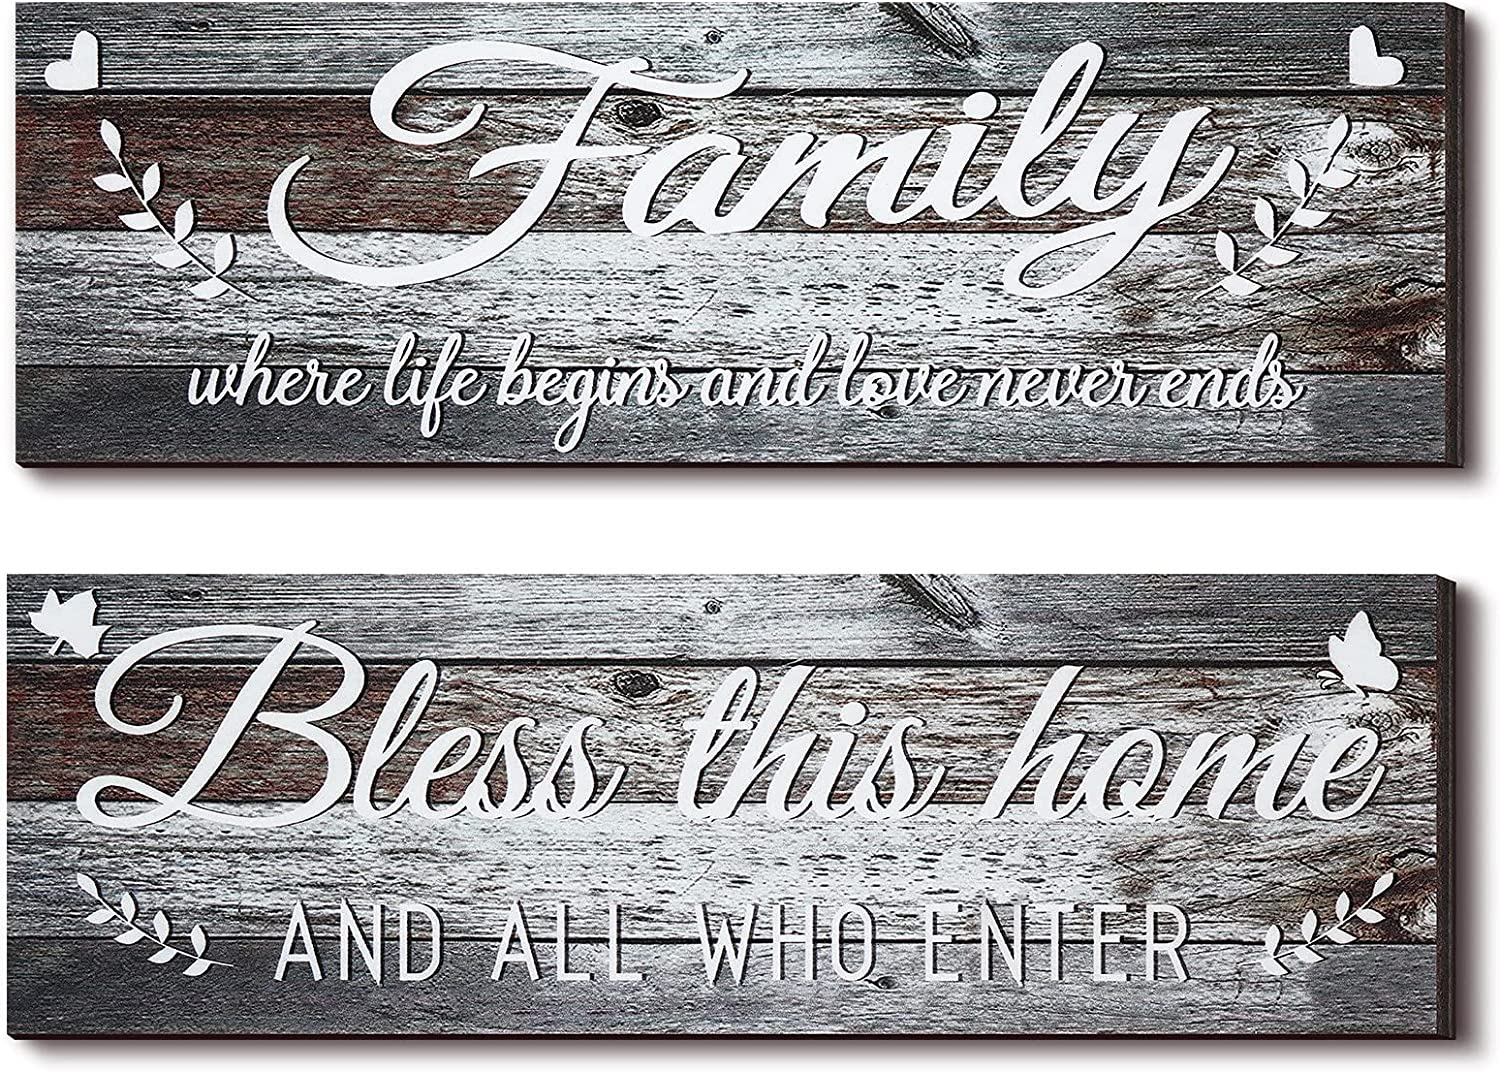 Jetec 2 Pieces Family Rustic Wooden Signs Bless This Home Wooden Wall Art Decor Farmhouse Family Entryway Sign Home Decoration for Bedroom Living Room Office Home Wall Decor, 13.8 x 4.7 Inch (Brown)